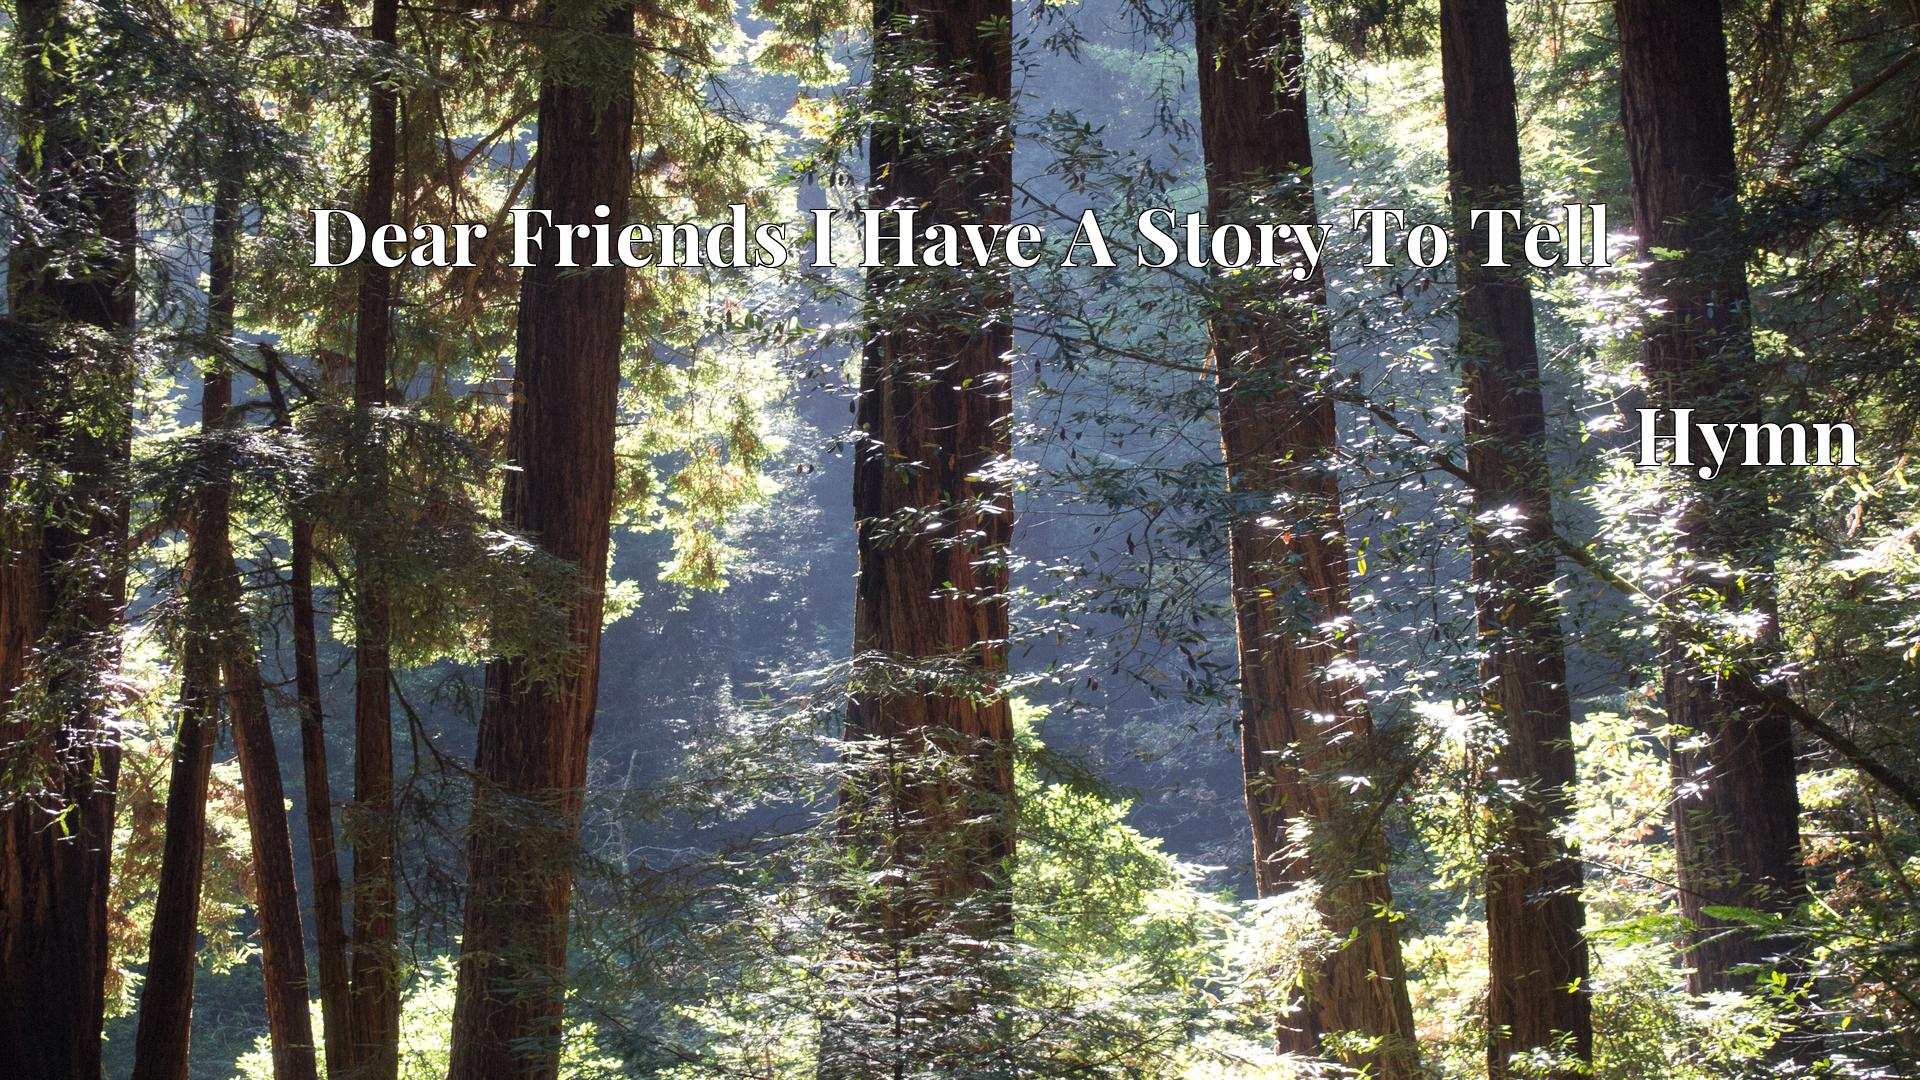 Dear Friends I Have A Story To Tell - Hymn